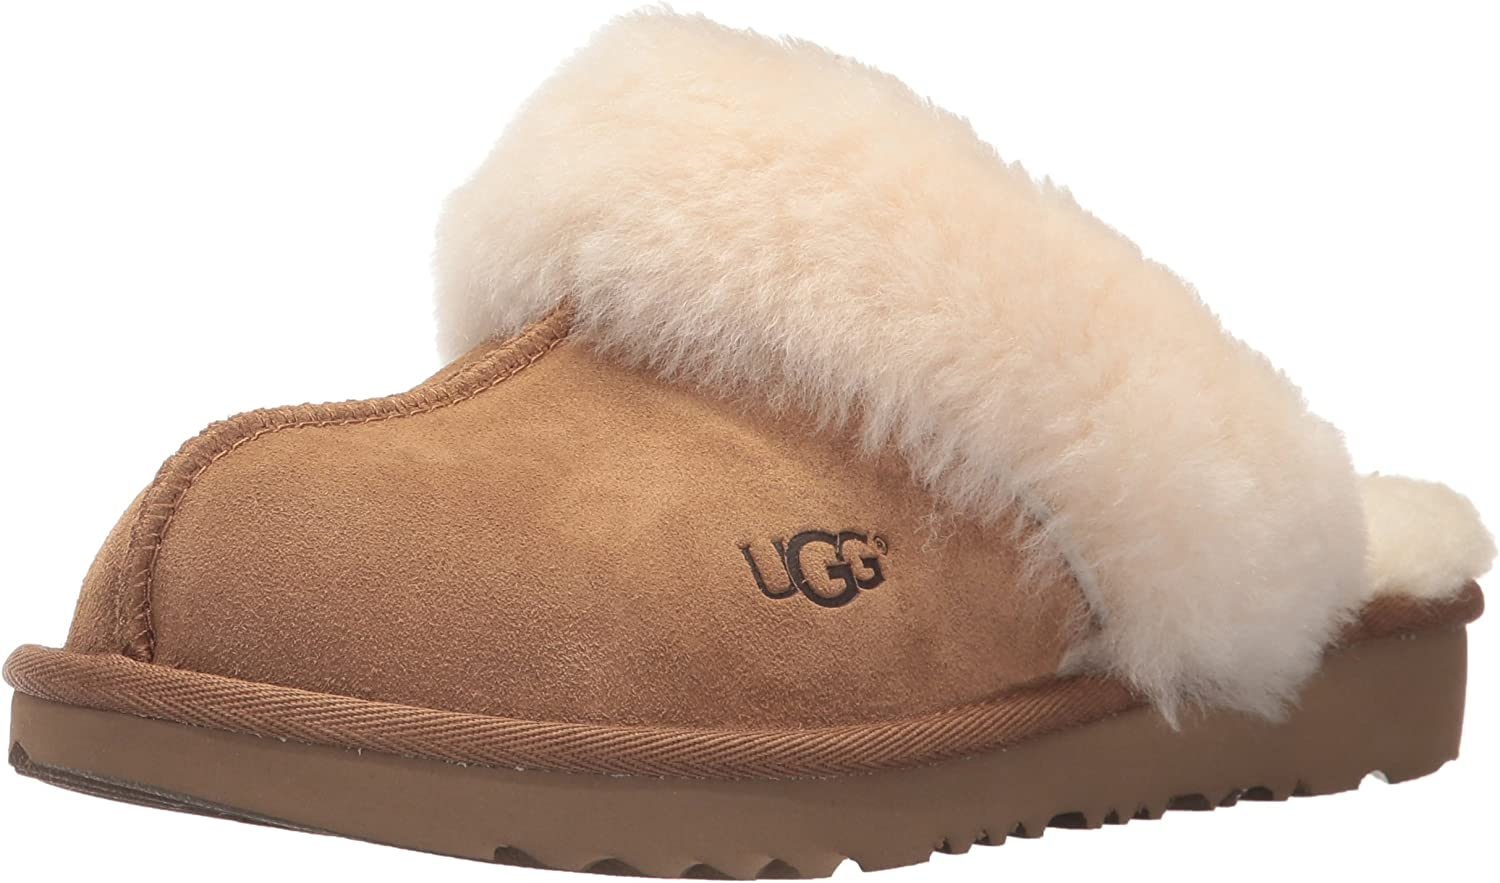 uggs kids slippers